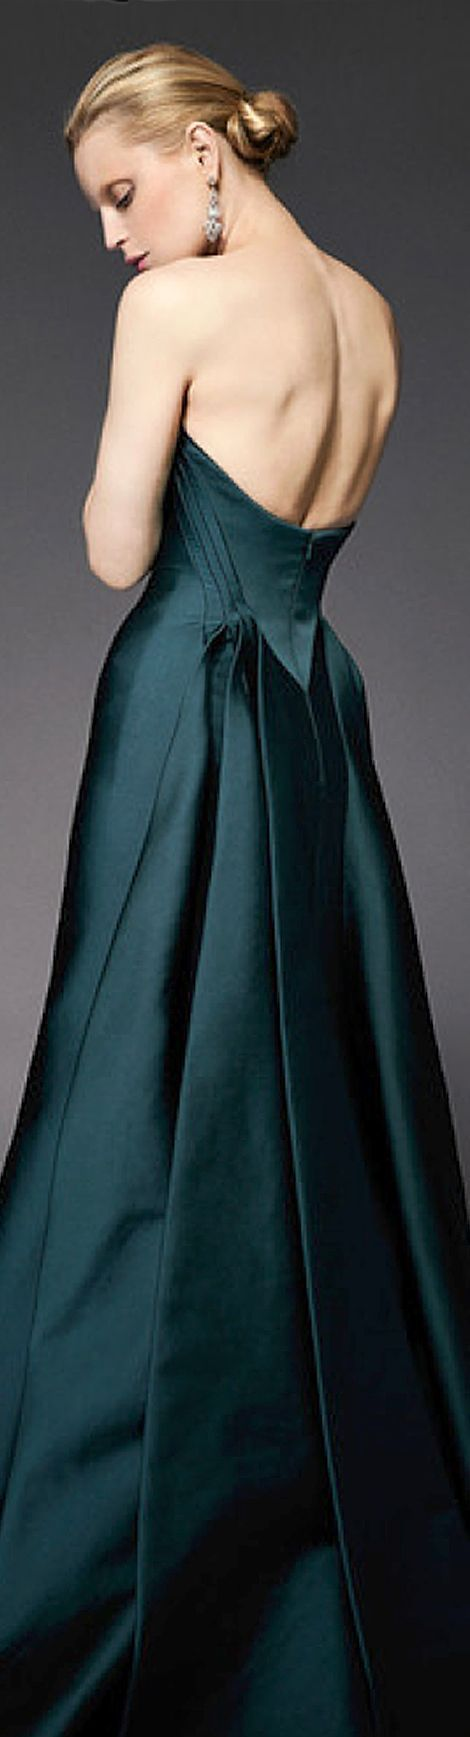 1000  ideas about Blue Green Dress on Pinterest - Blue green ...